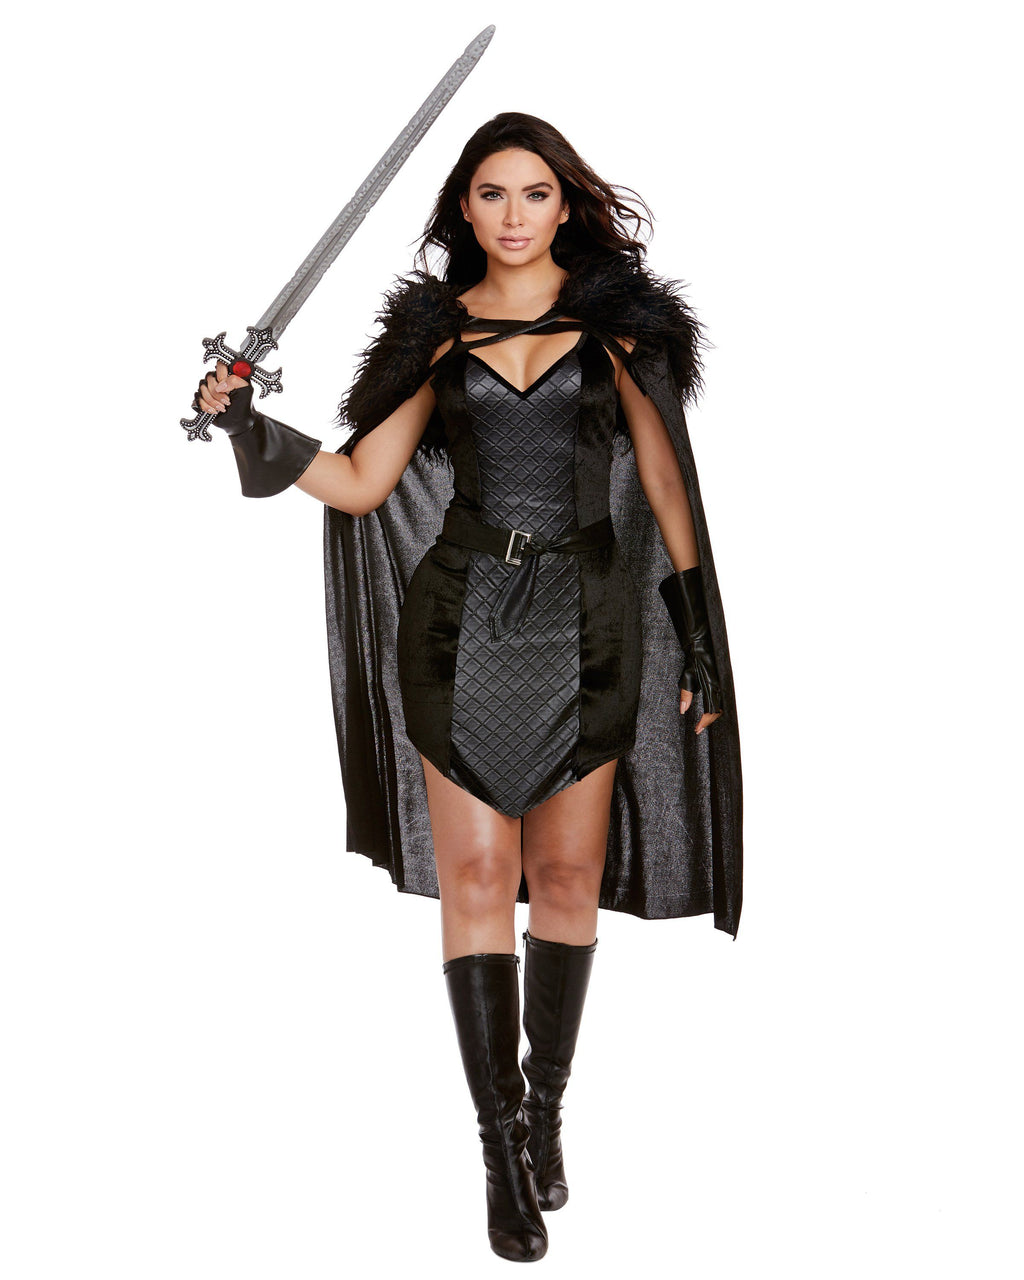 Warrior Queen Women's Costume Dreamgirl Costume